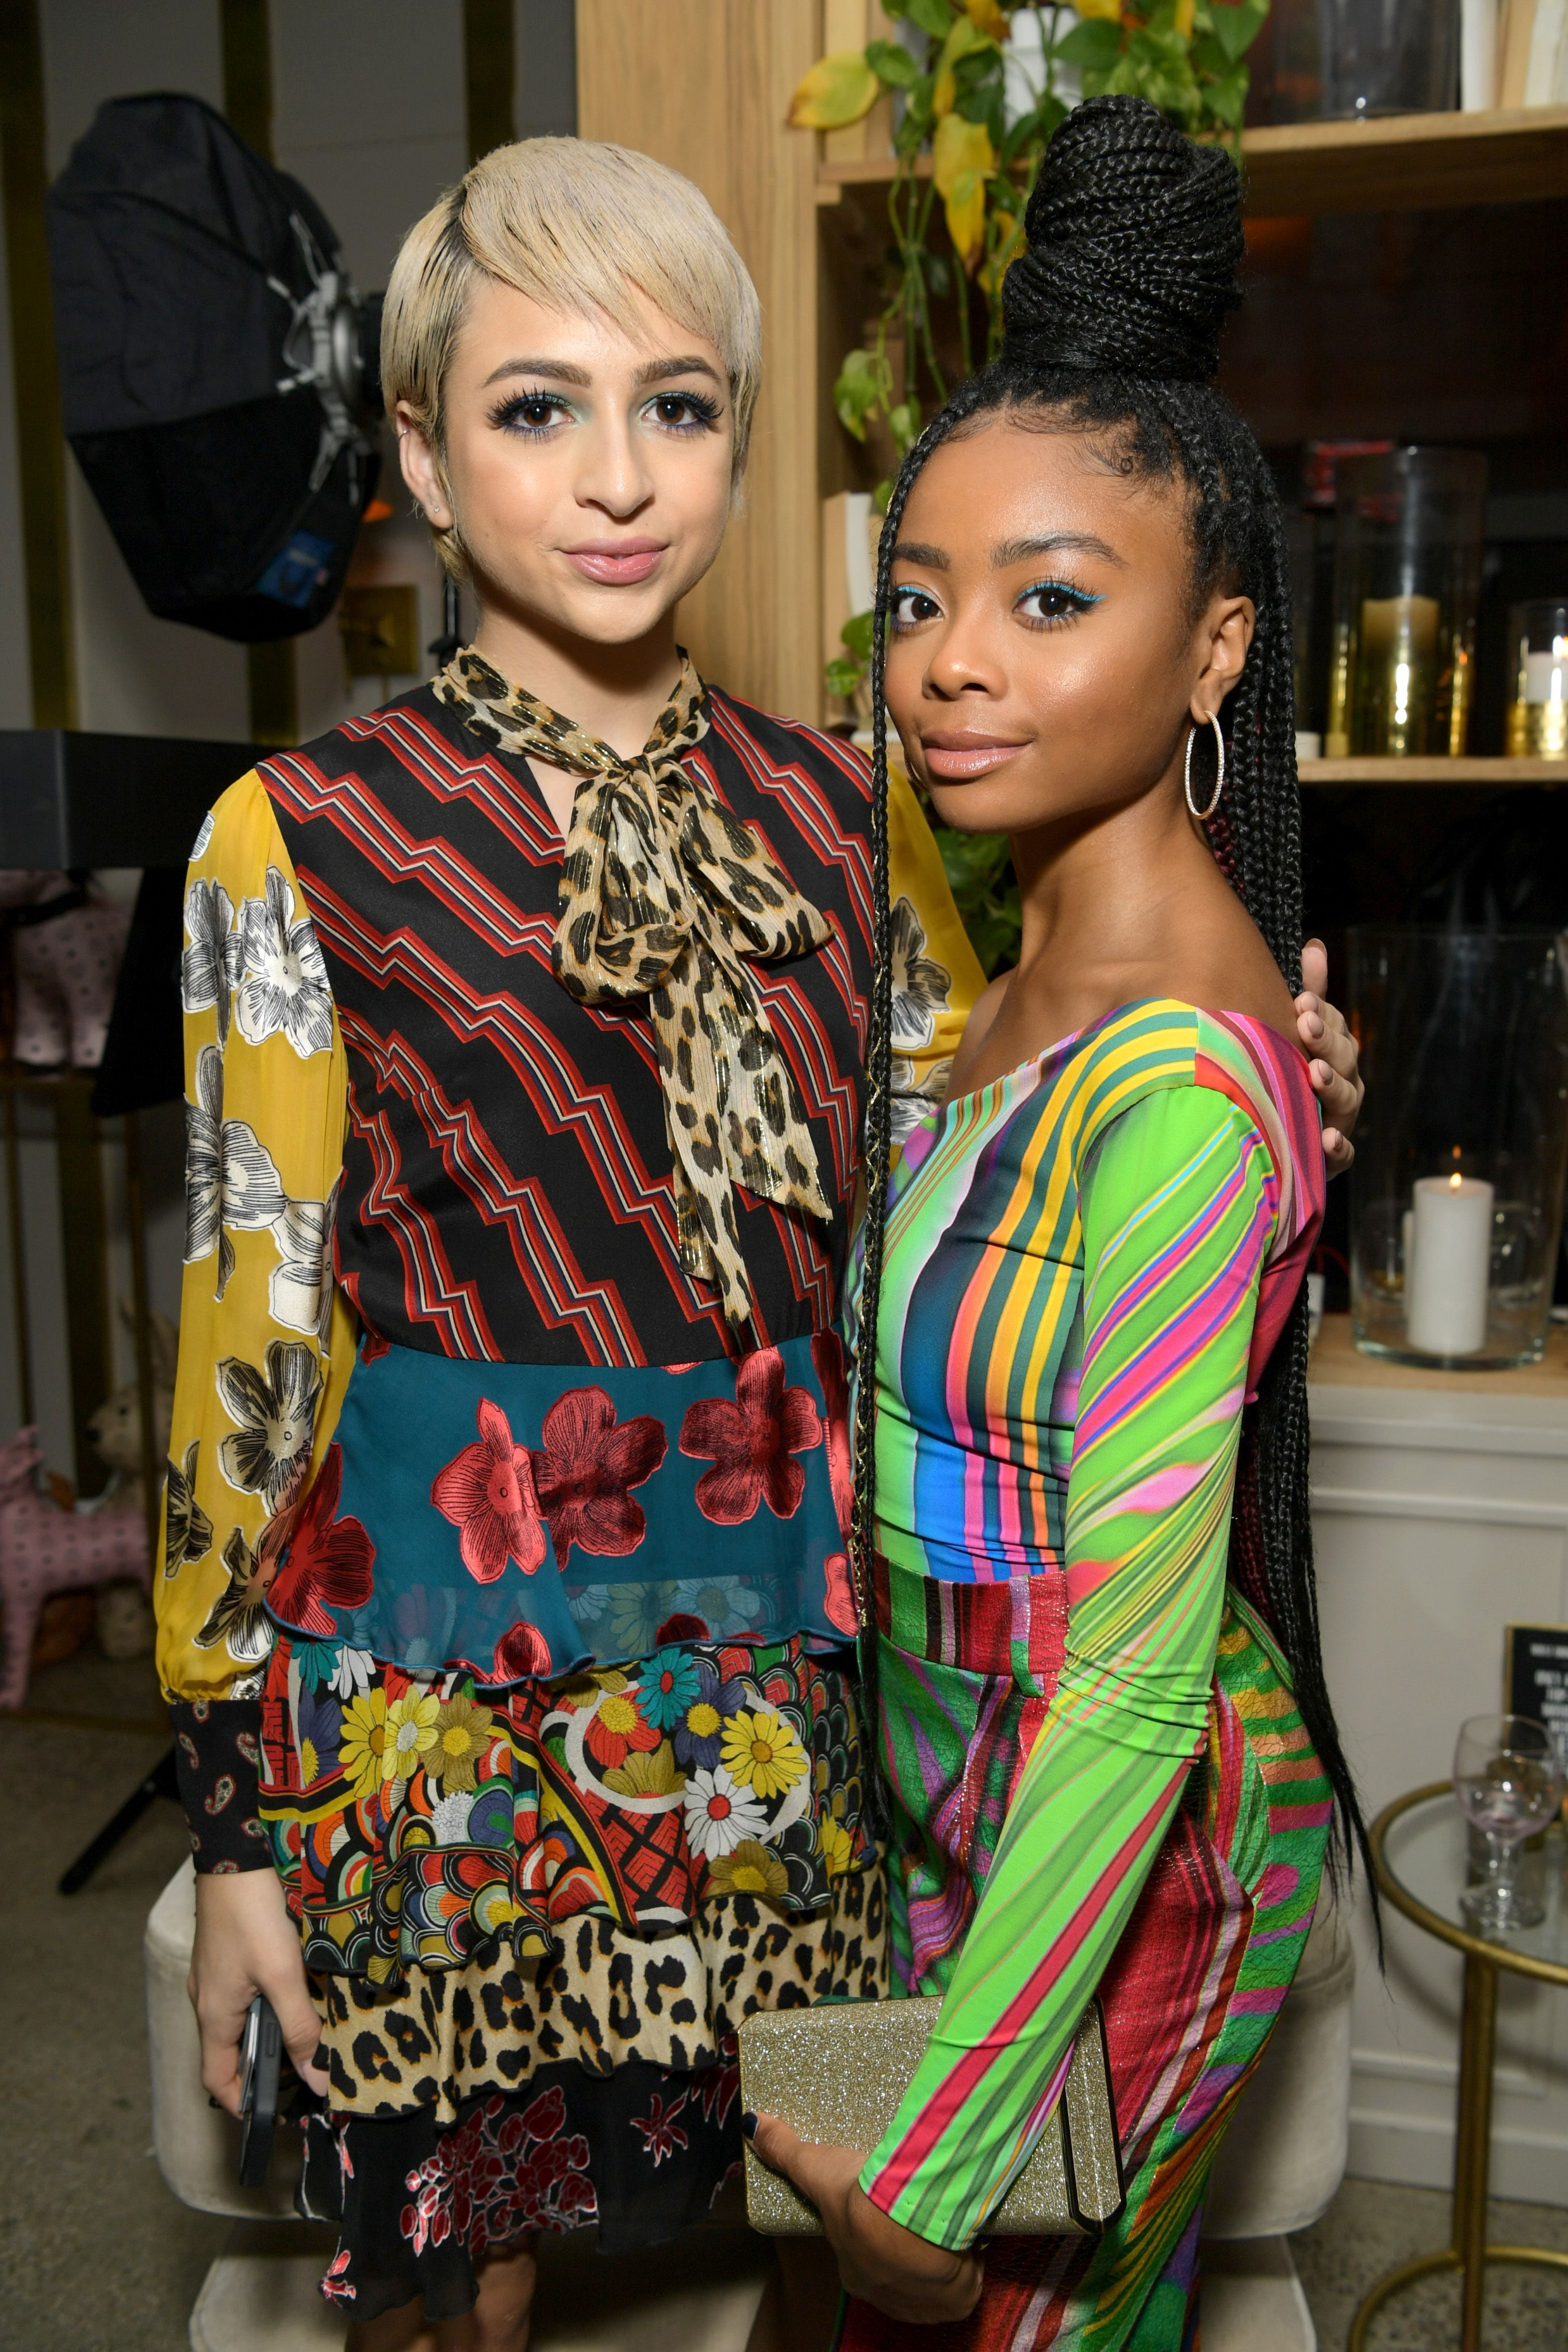 Josie Jay Totah and Skai Jackson at the Change Maker event in Los Angeles.